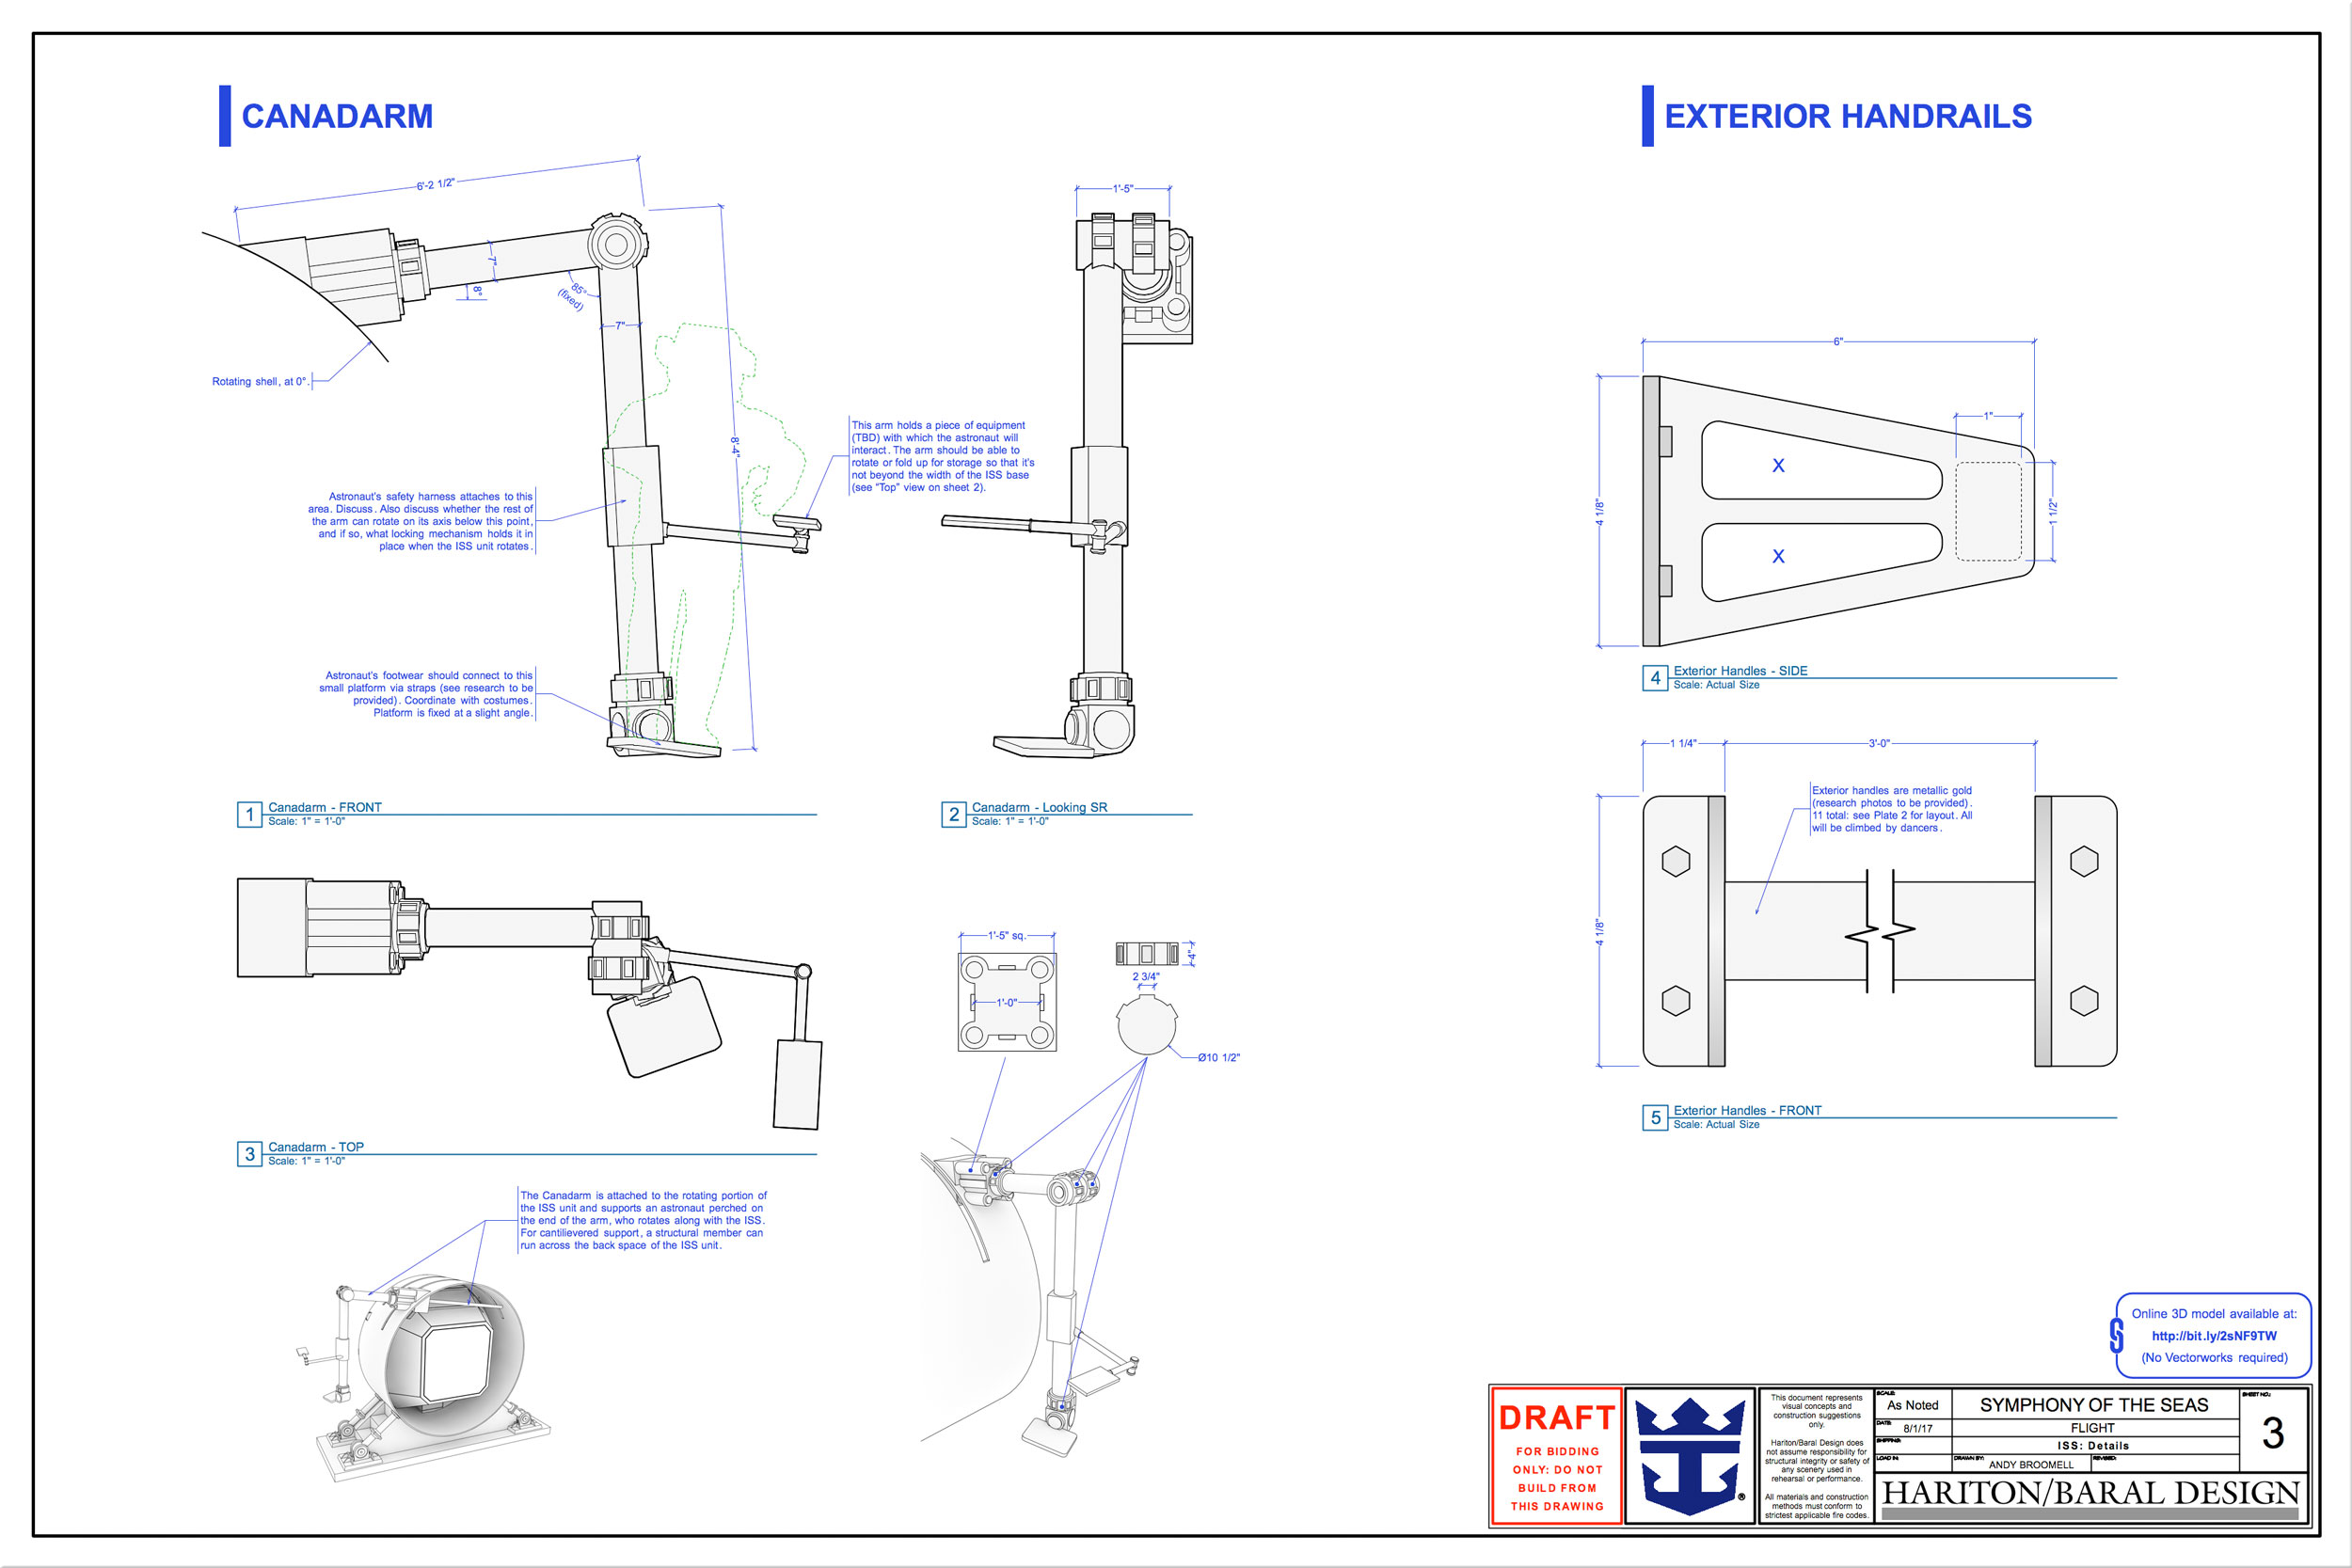 andy-broomell-vectorworks-drafting-iss-3.jpg